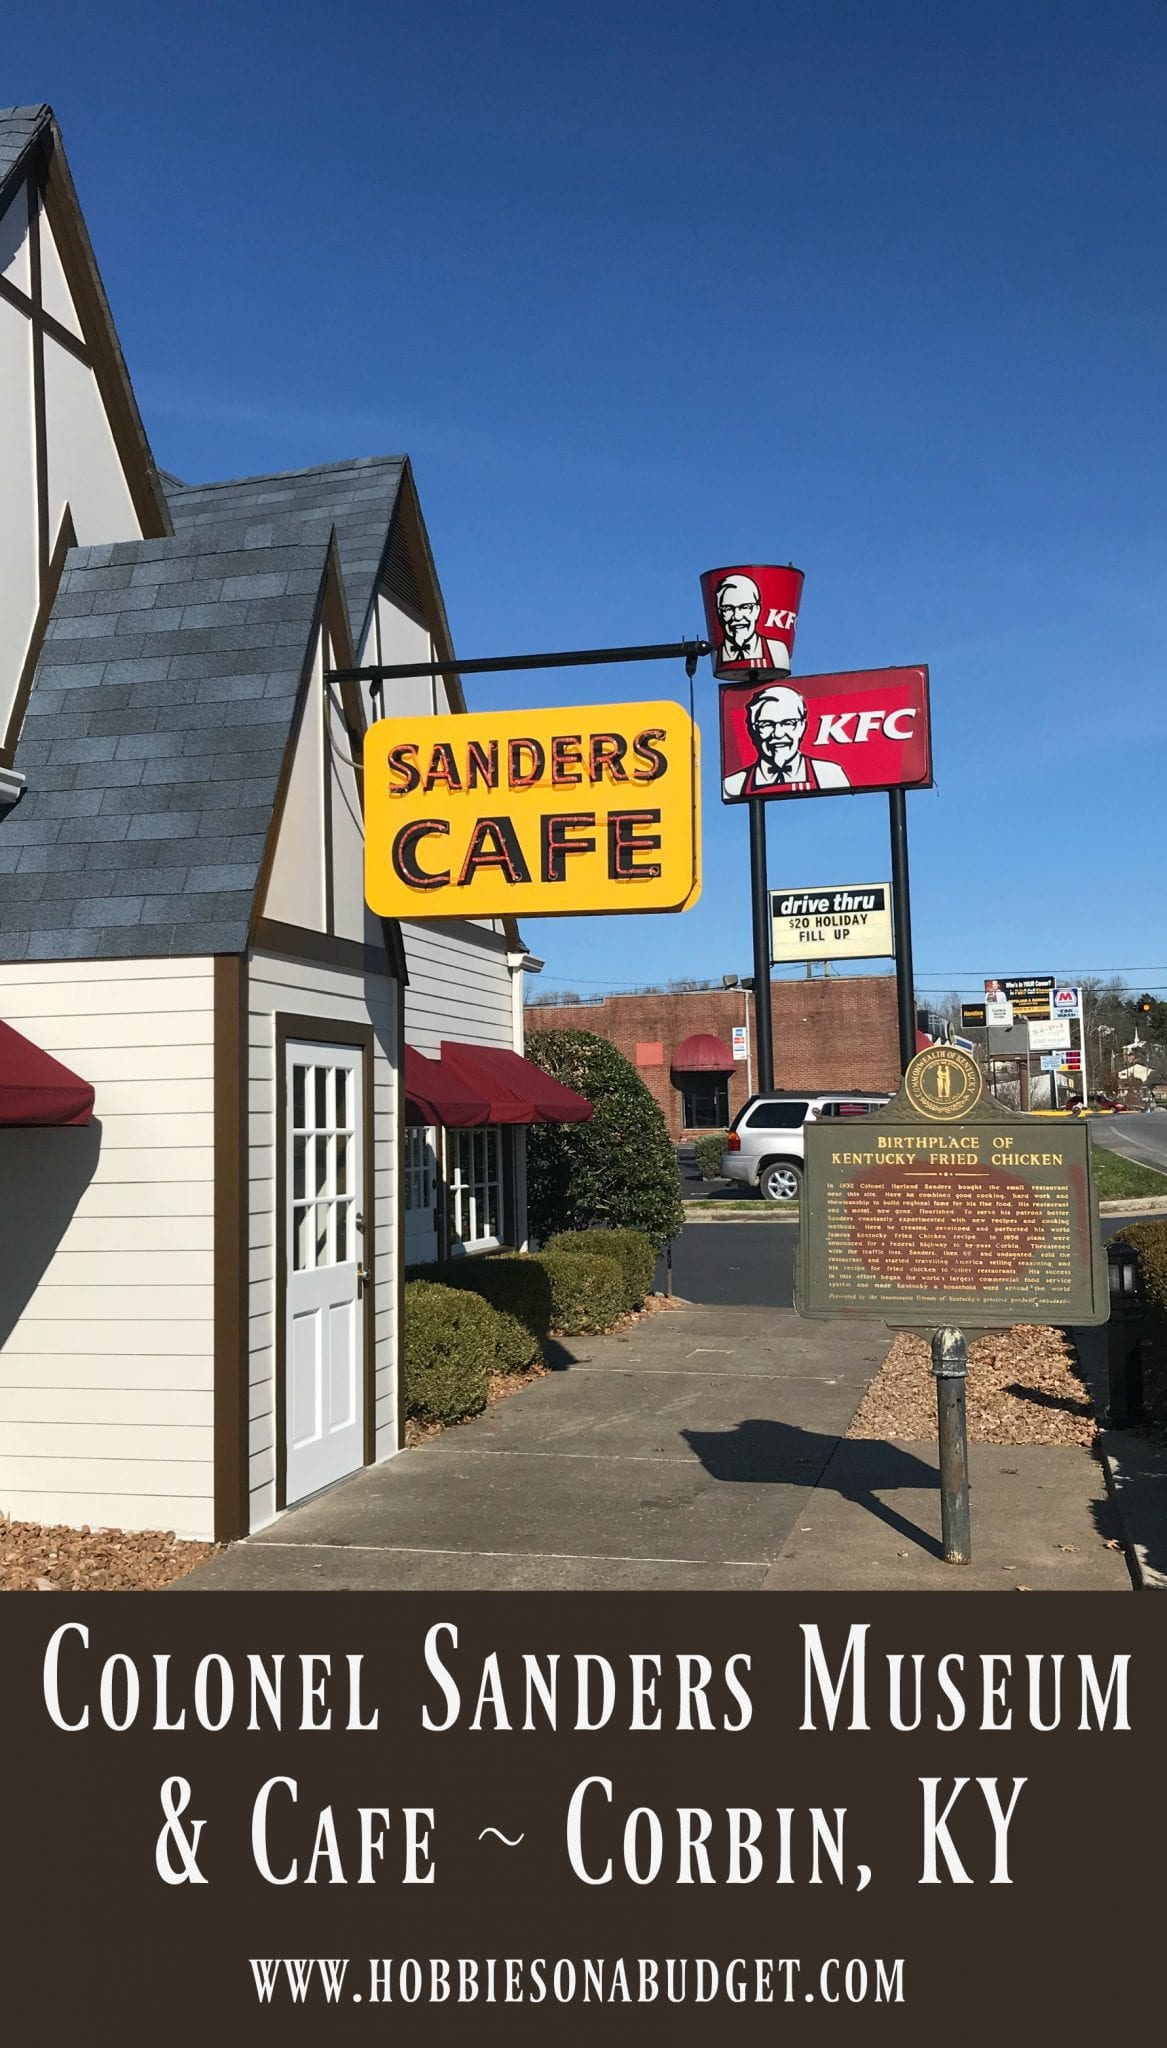 If you love Kentucky Fried Chicken, then you need to stop at the Harlan Sanders Cafe & Museum - the birthplace of KFC in Corbin, Kentucky on I-75! How many places can you eat your food in a modern restaurant while enjoying the feel of a legend like Colonel Sanders?